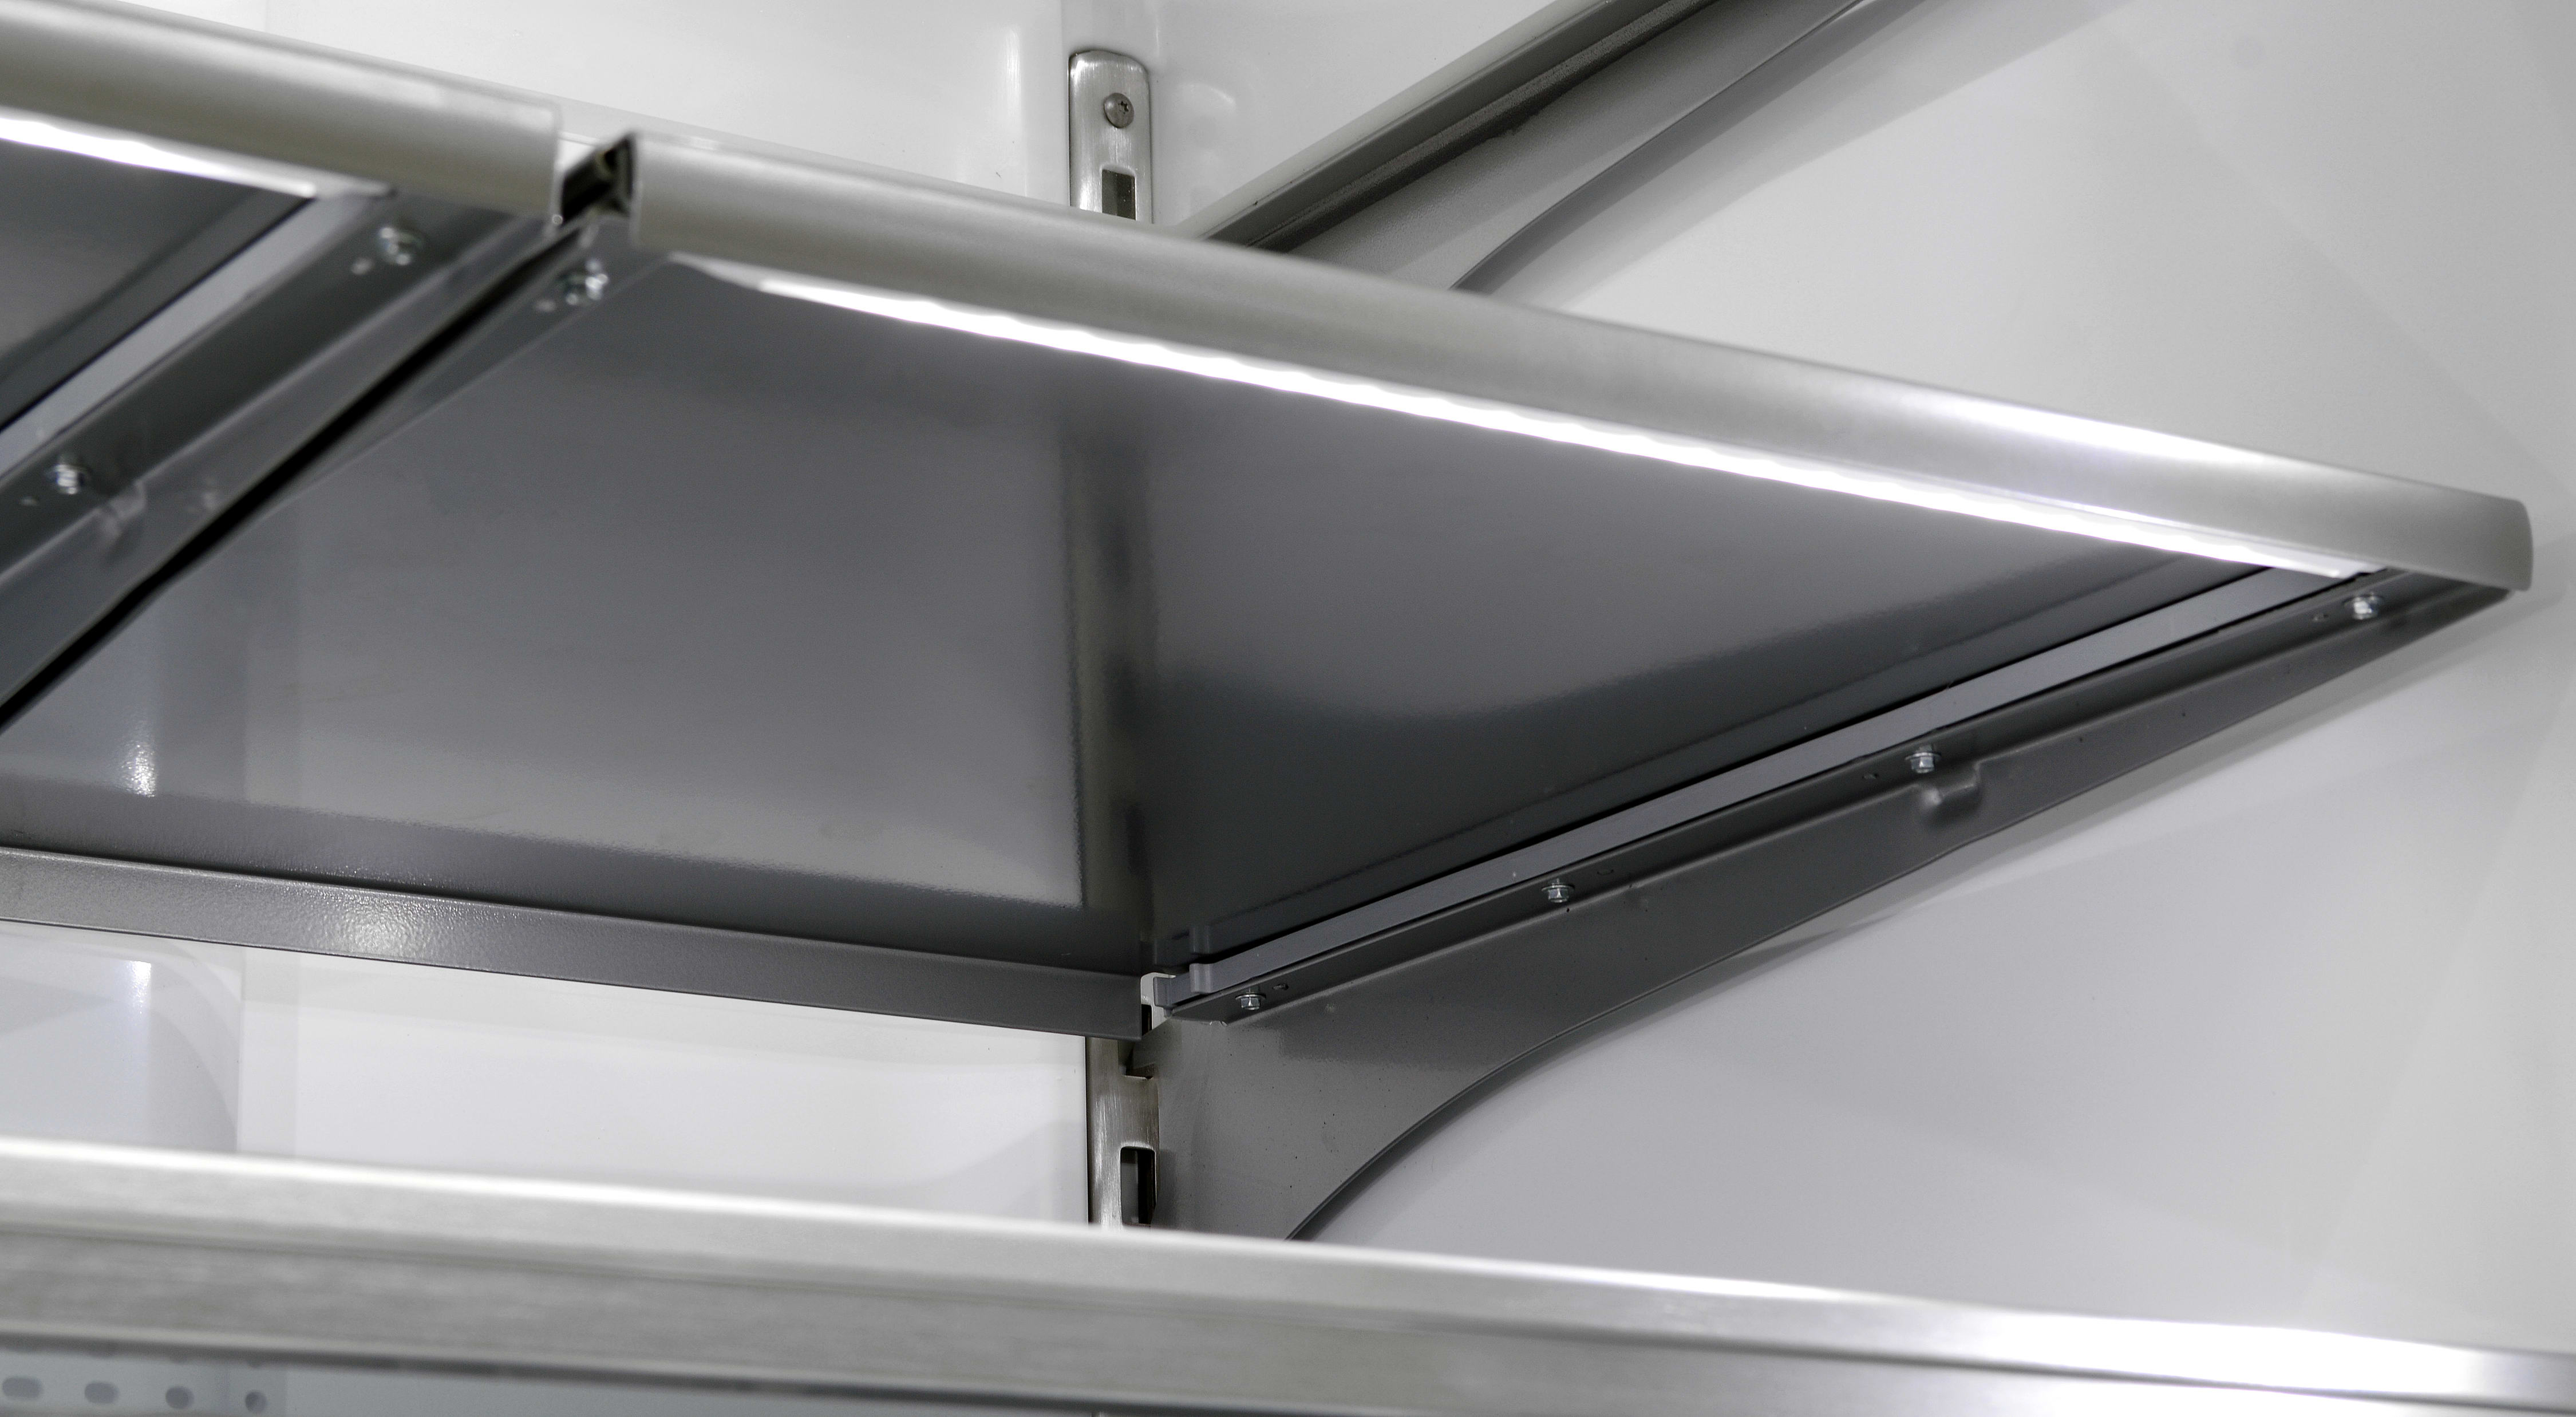 To deal with the opaque design, both of the Maytag MFX2876DRM's stainless shelves have built-in LED lights just underneath their front edges.